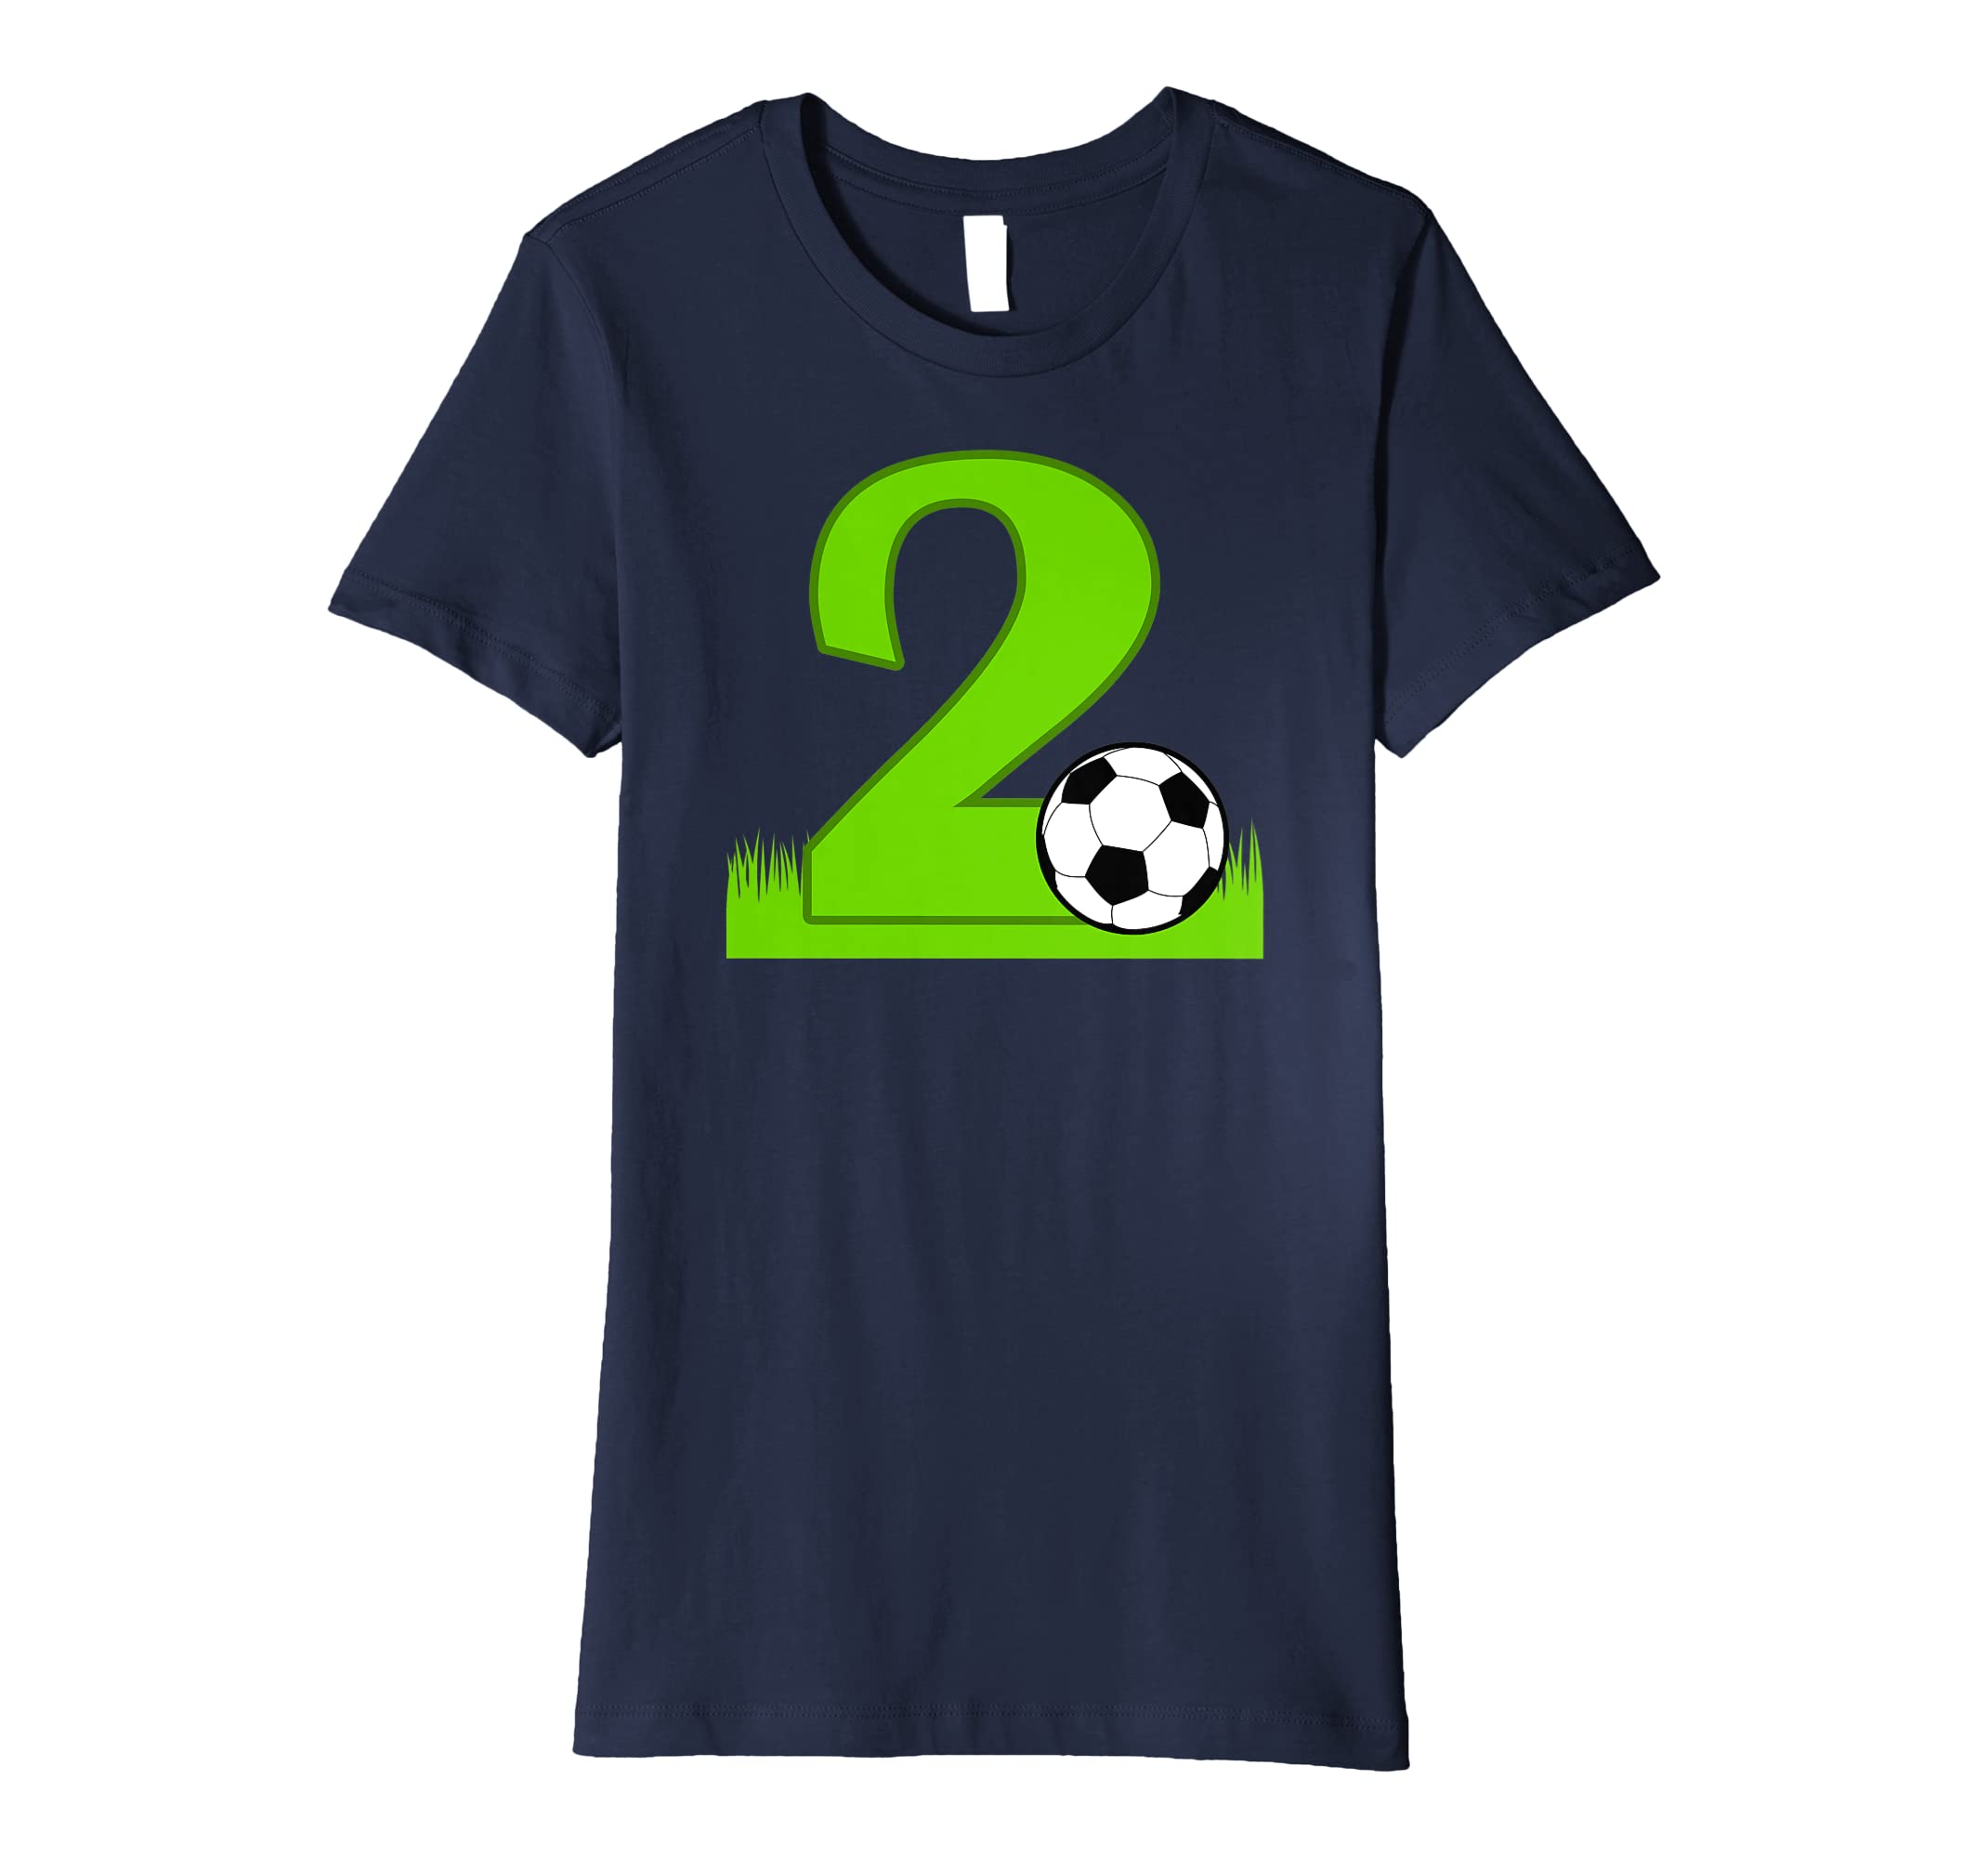 c376ecf5 Amazon.com: 2nd Birthday Soccer T-Shirt for 2 years old: Clothing